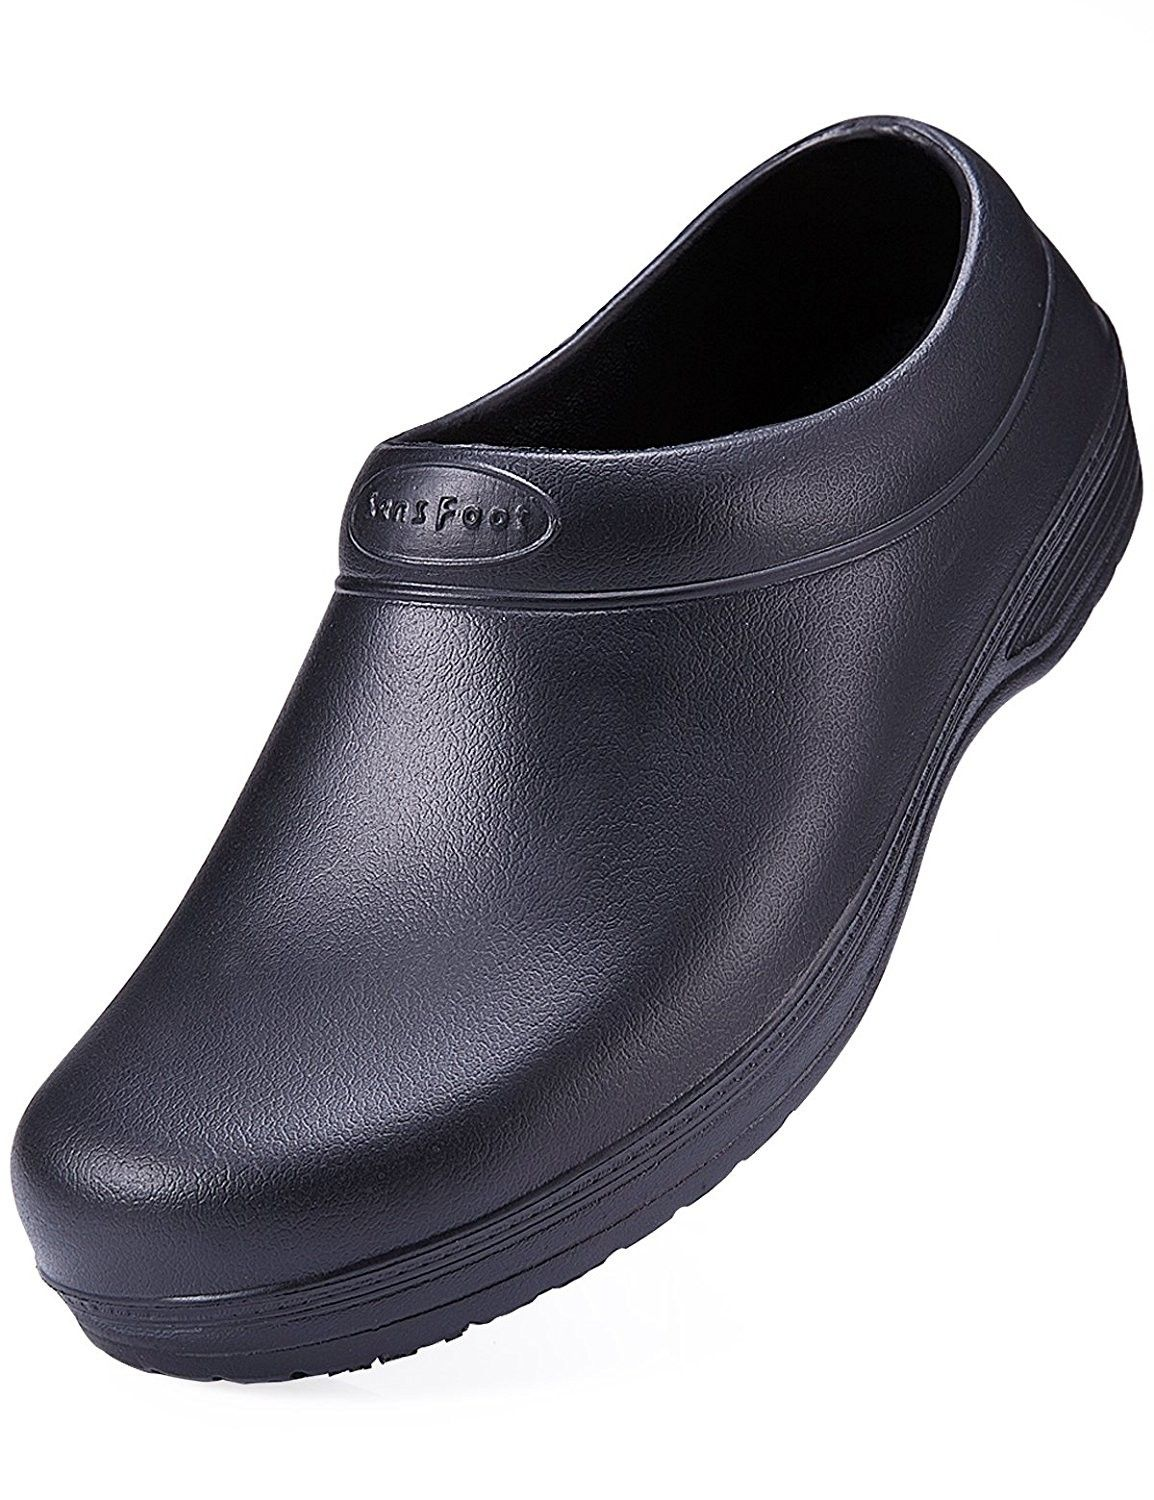 Slip Resistant Chef Shoes Black Non Slip Kitchen Work Clogs For